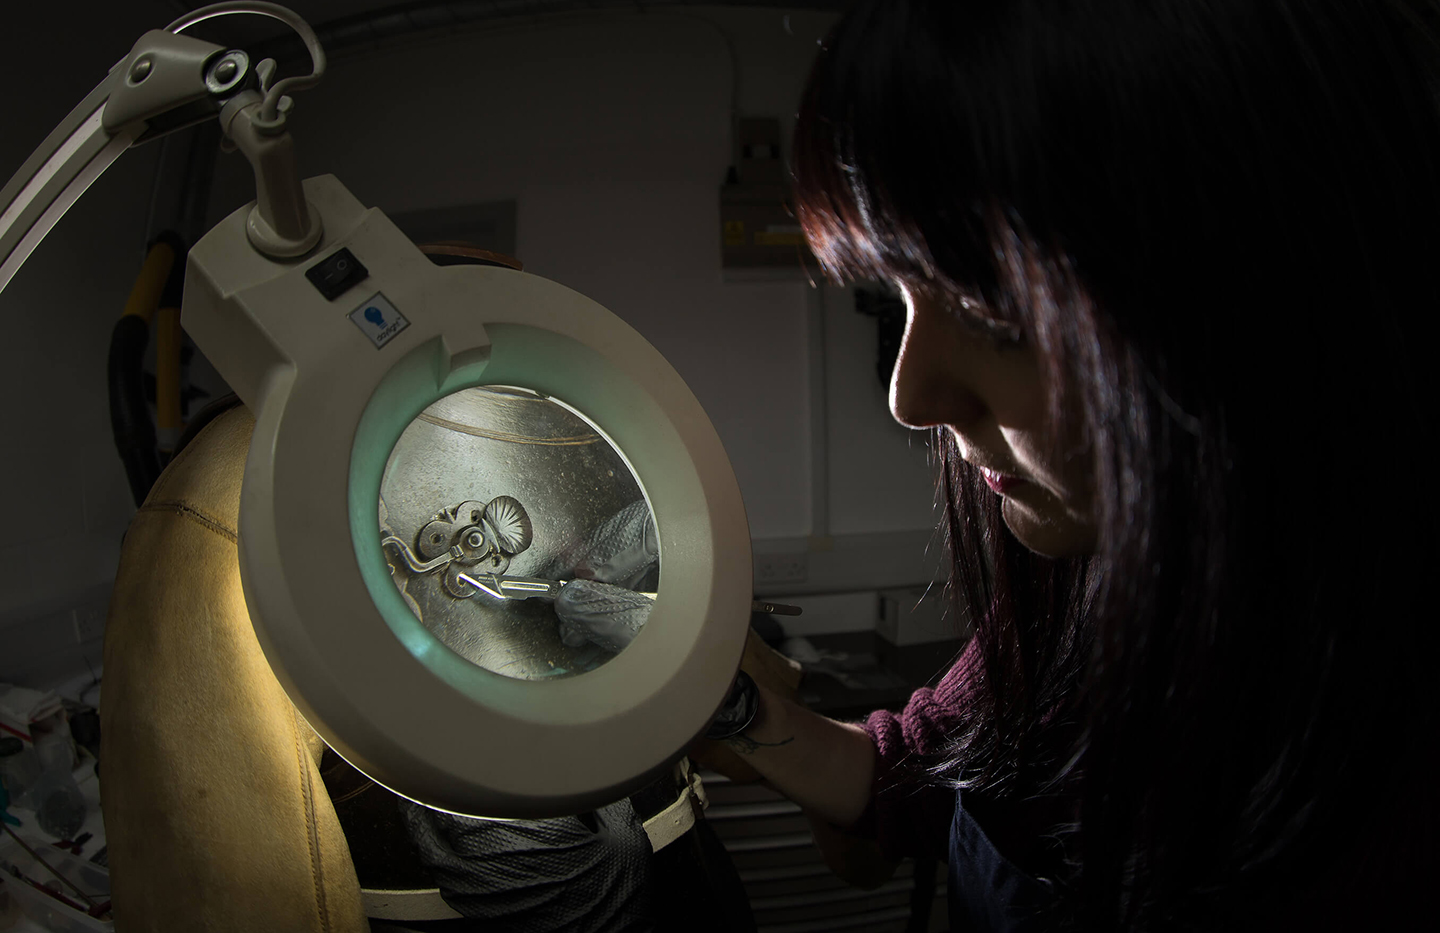 Conservator examining an object